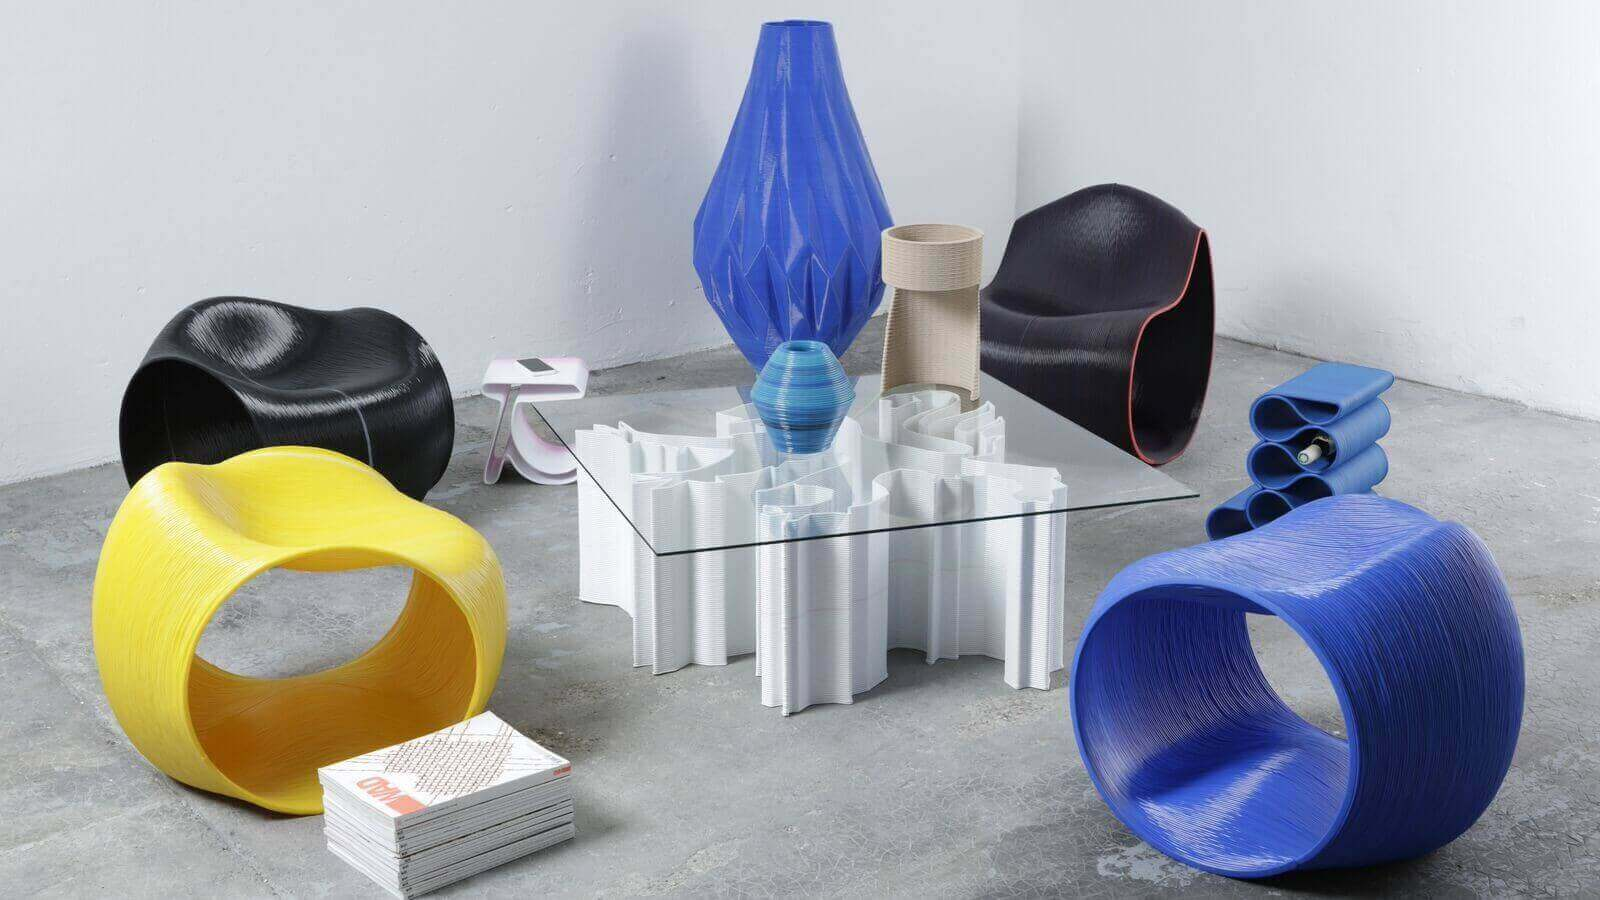 3D Printed Furniture: If You Love Them Head Over to Kickstarter | All3DP